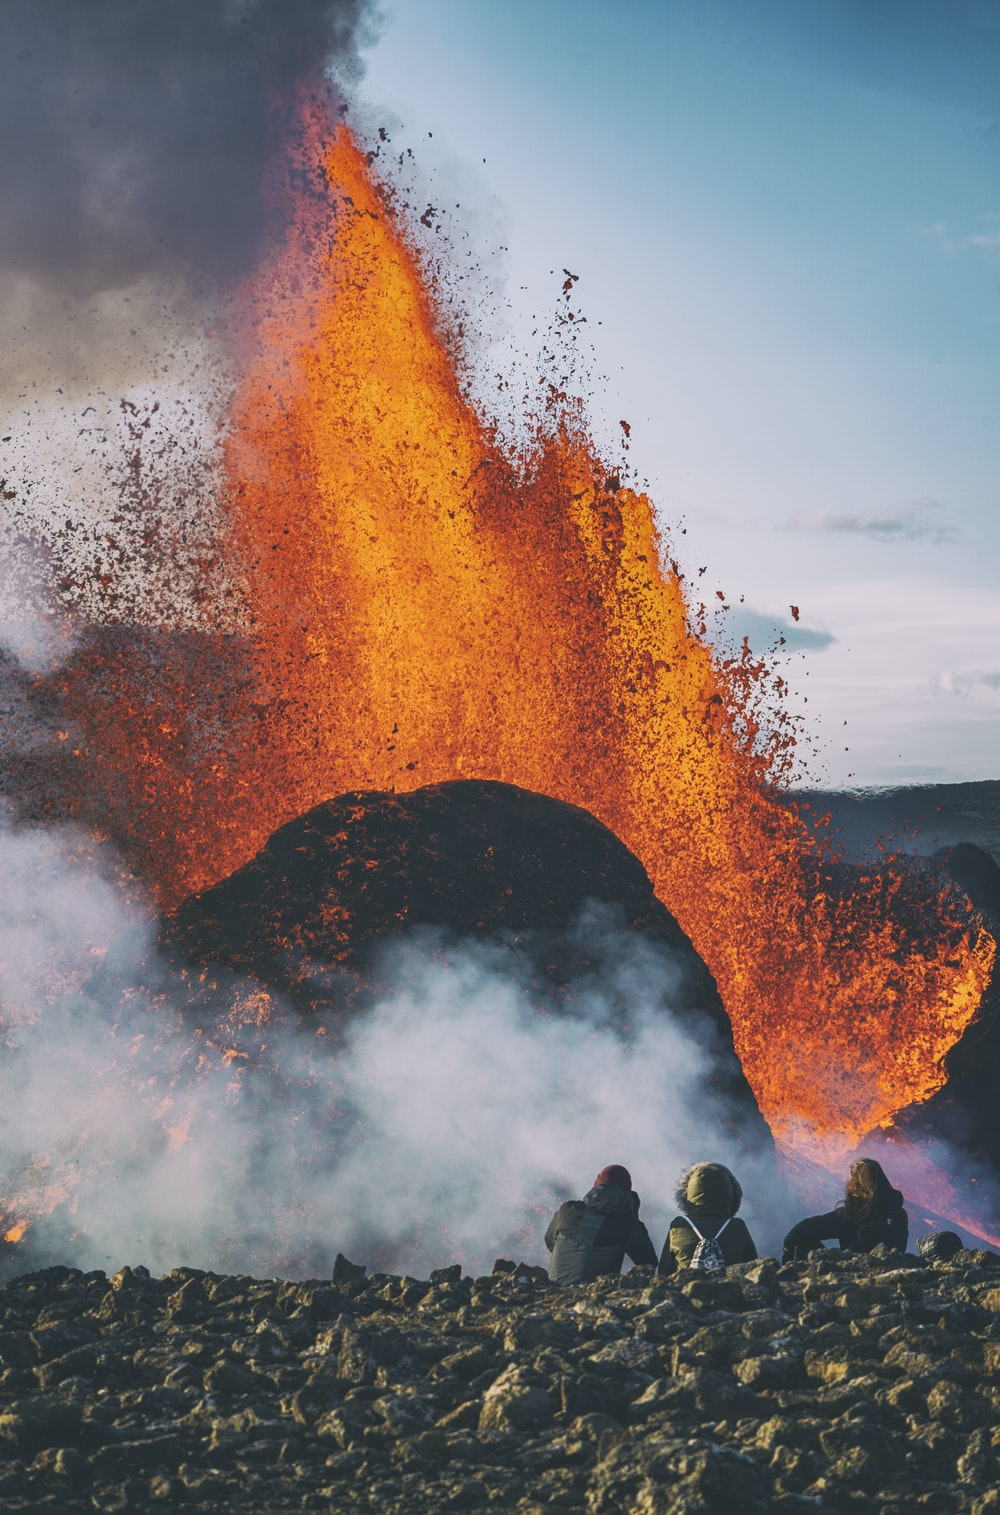 people standing on rock formation with fire during daytime